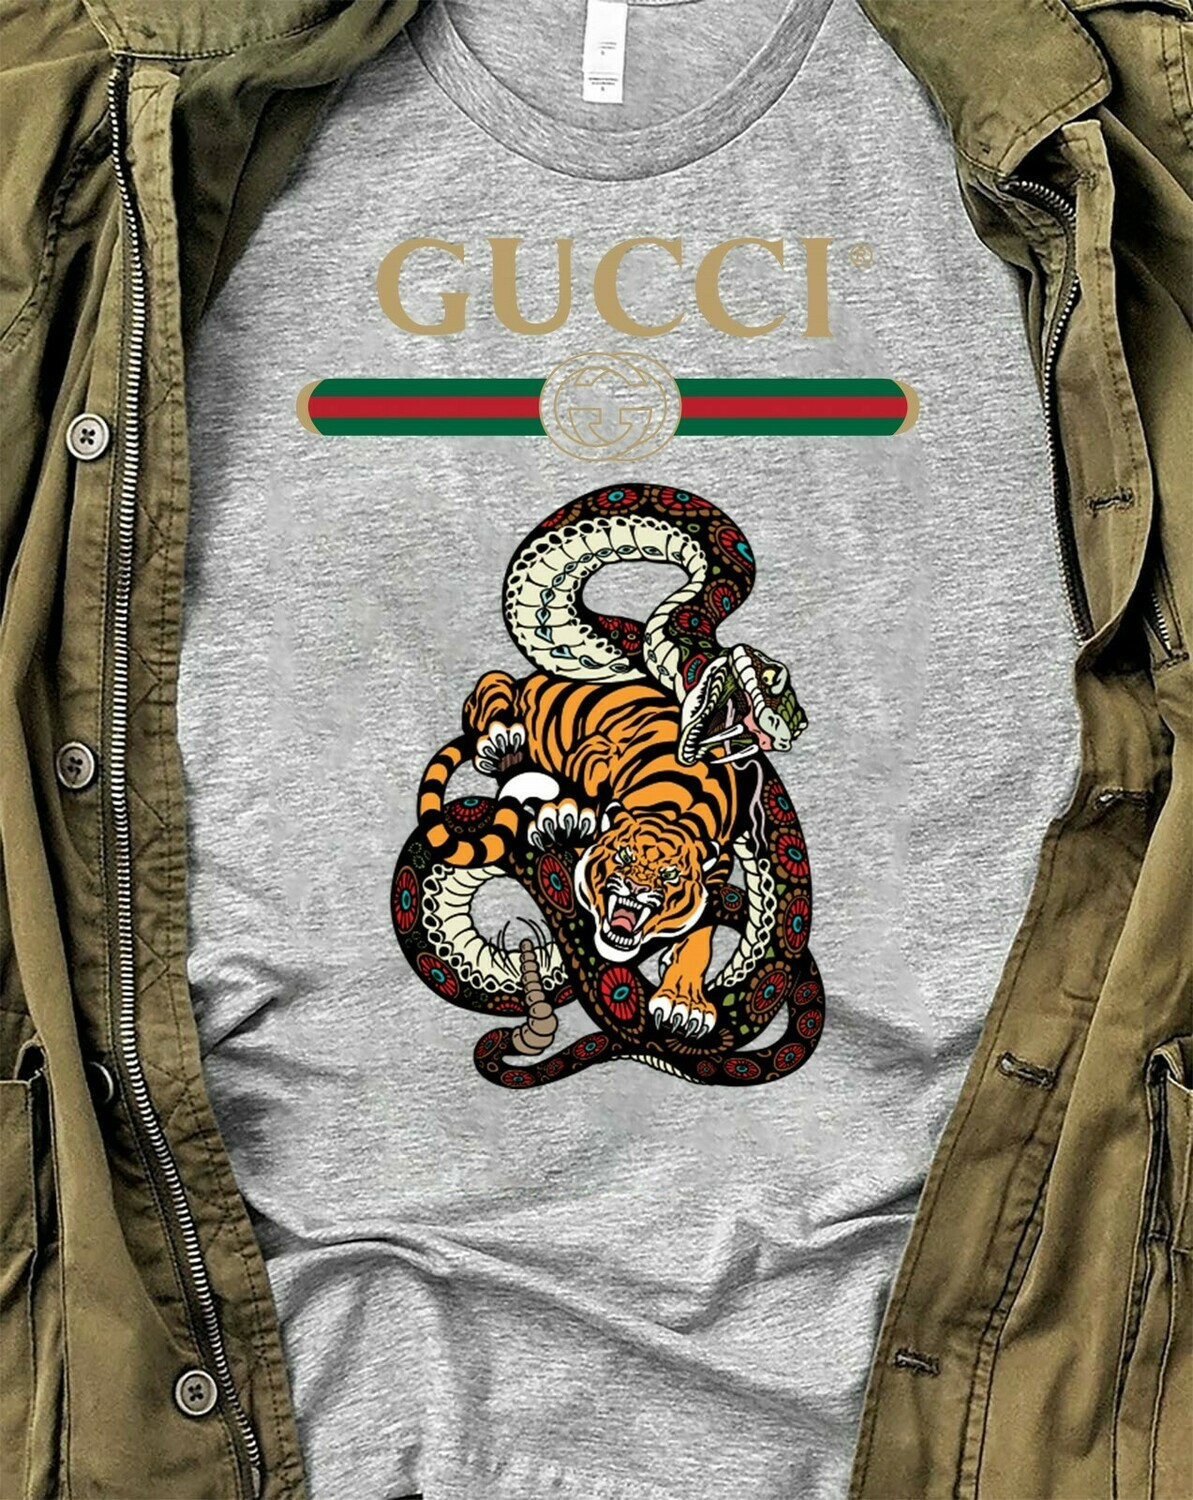 Snake Tiger Logo Gucci, Gucci Shirt, Gucci T-shirt, Gucci Logo, Gucci Fashion shirt, Fashion shirt, Gucci Design, Snake Gucci vintage shirt Long Sleeve Sweatshirt Hoodie Jolly Family Gifts